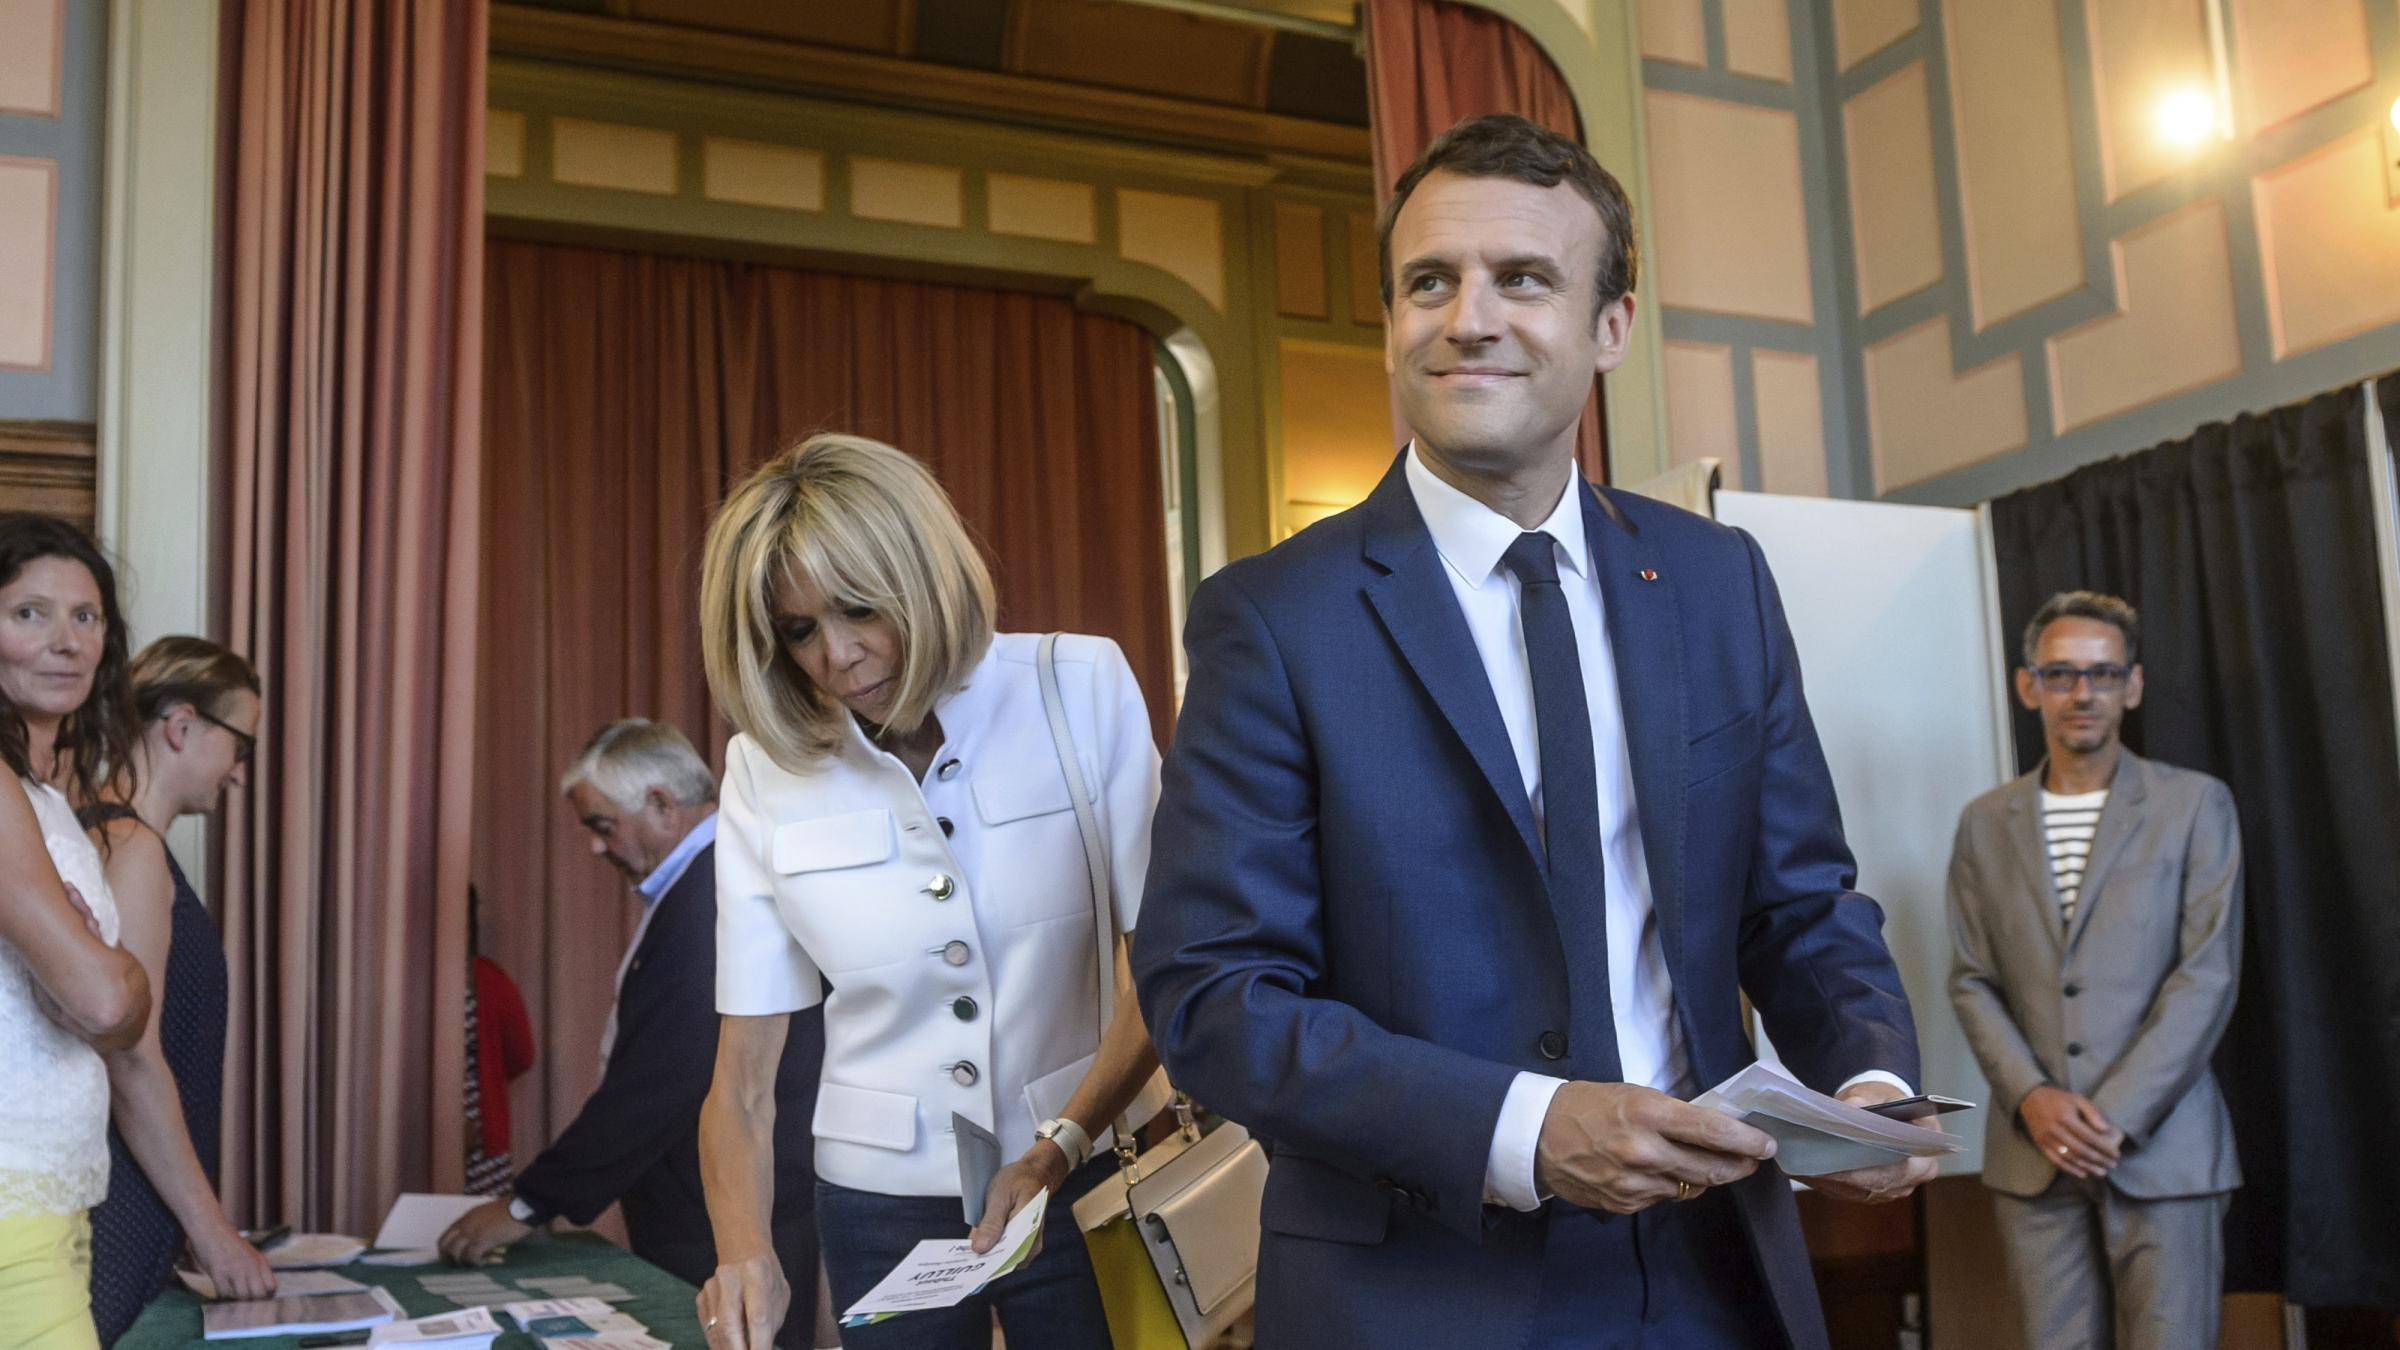 Low turnout but big majority ahead for Macron